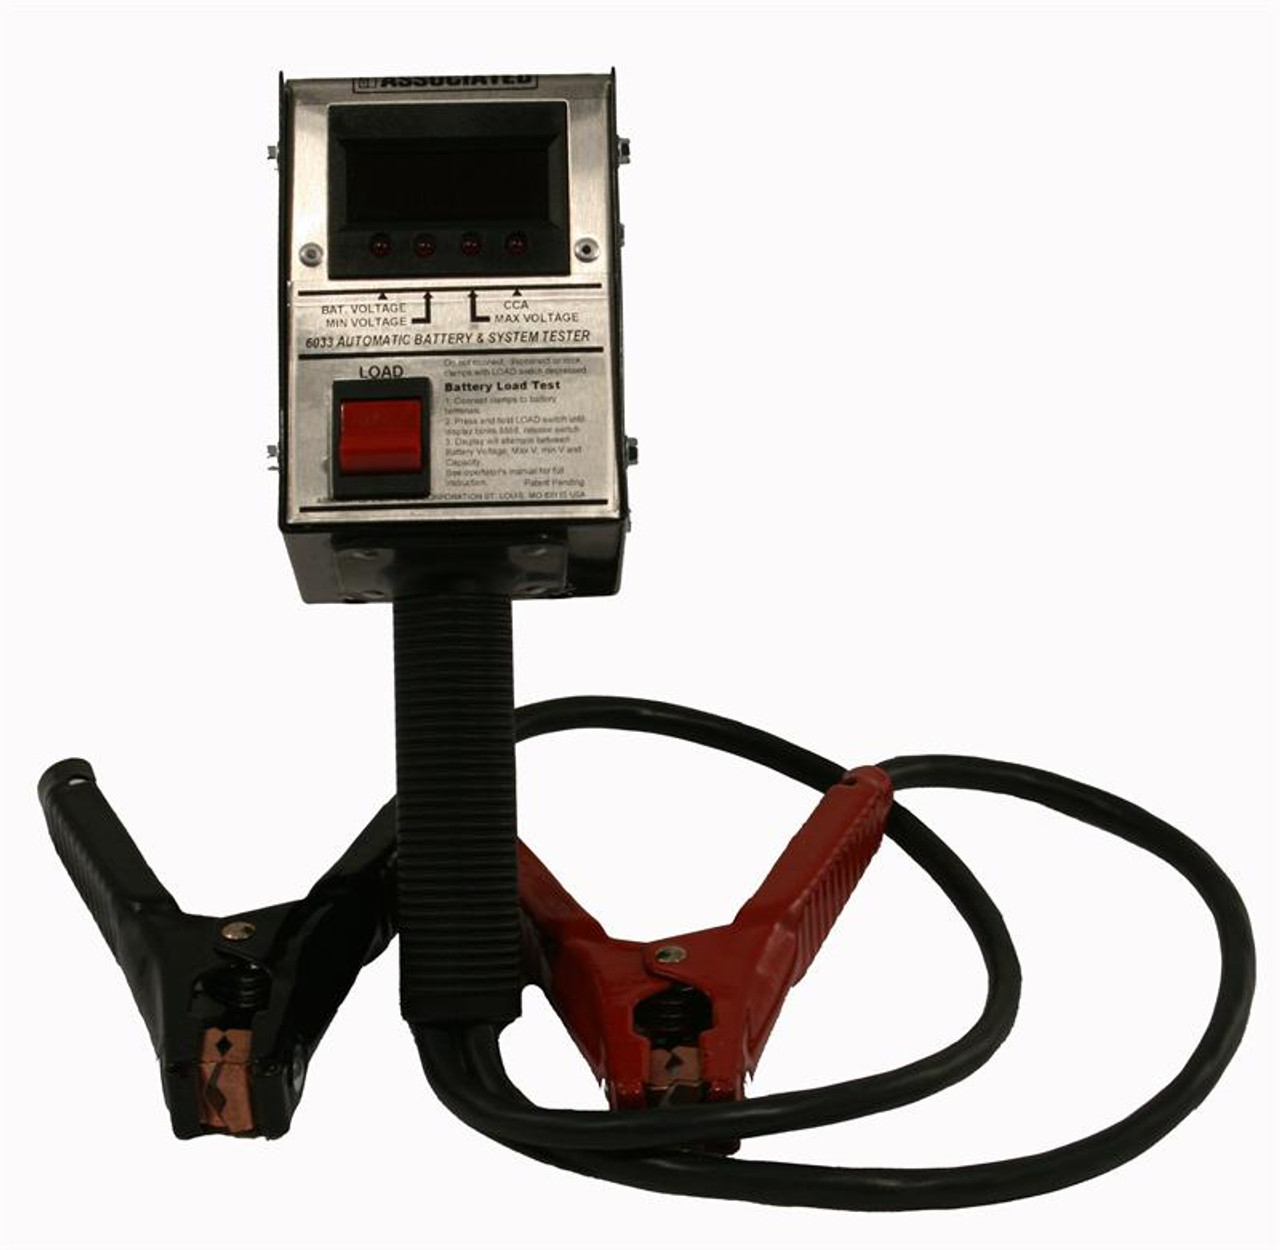 Hand Held Gold Tester : Associated hand held load tester mile equipment